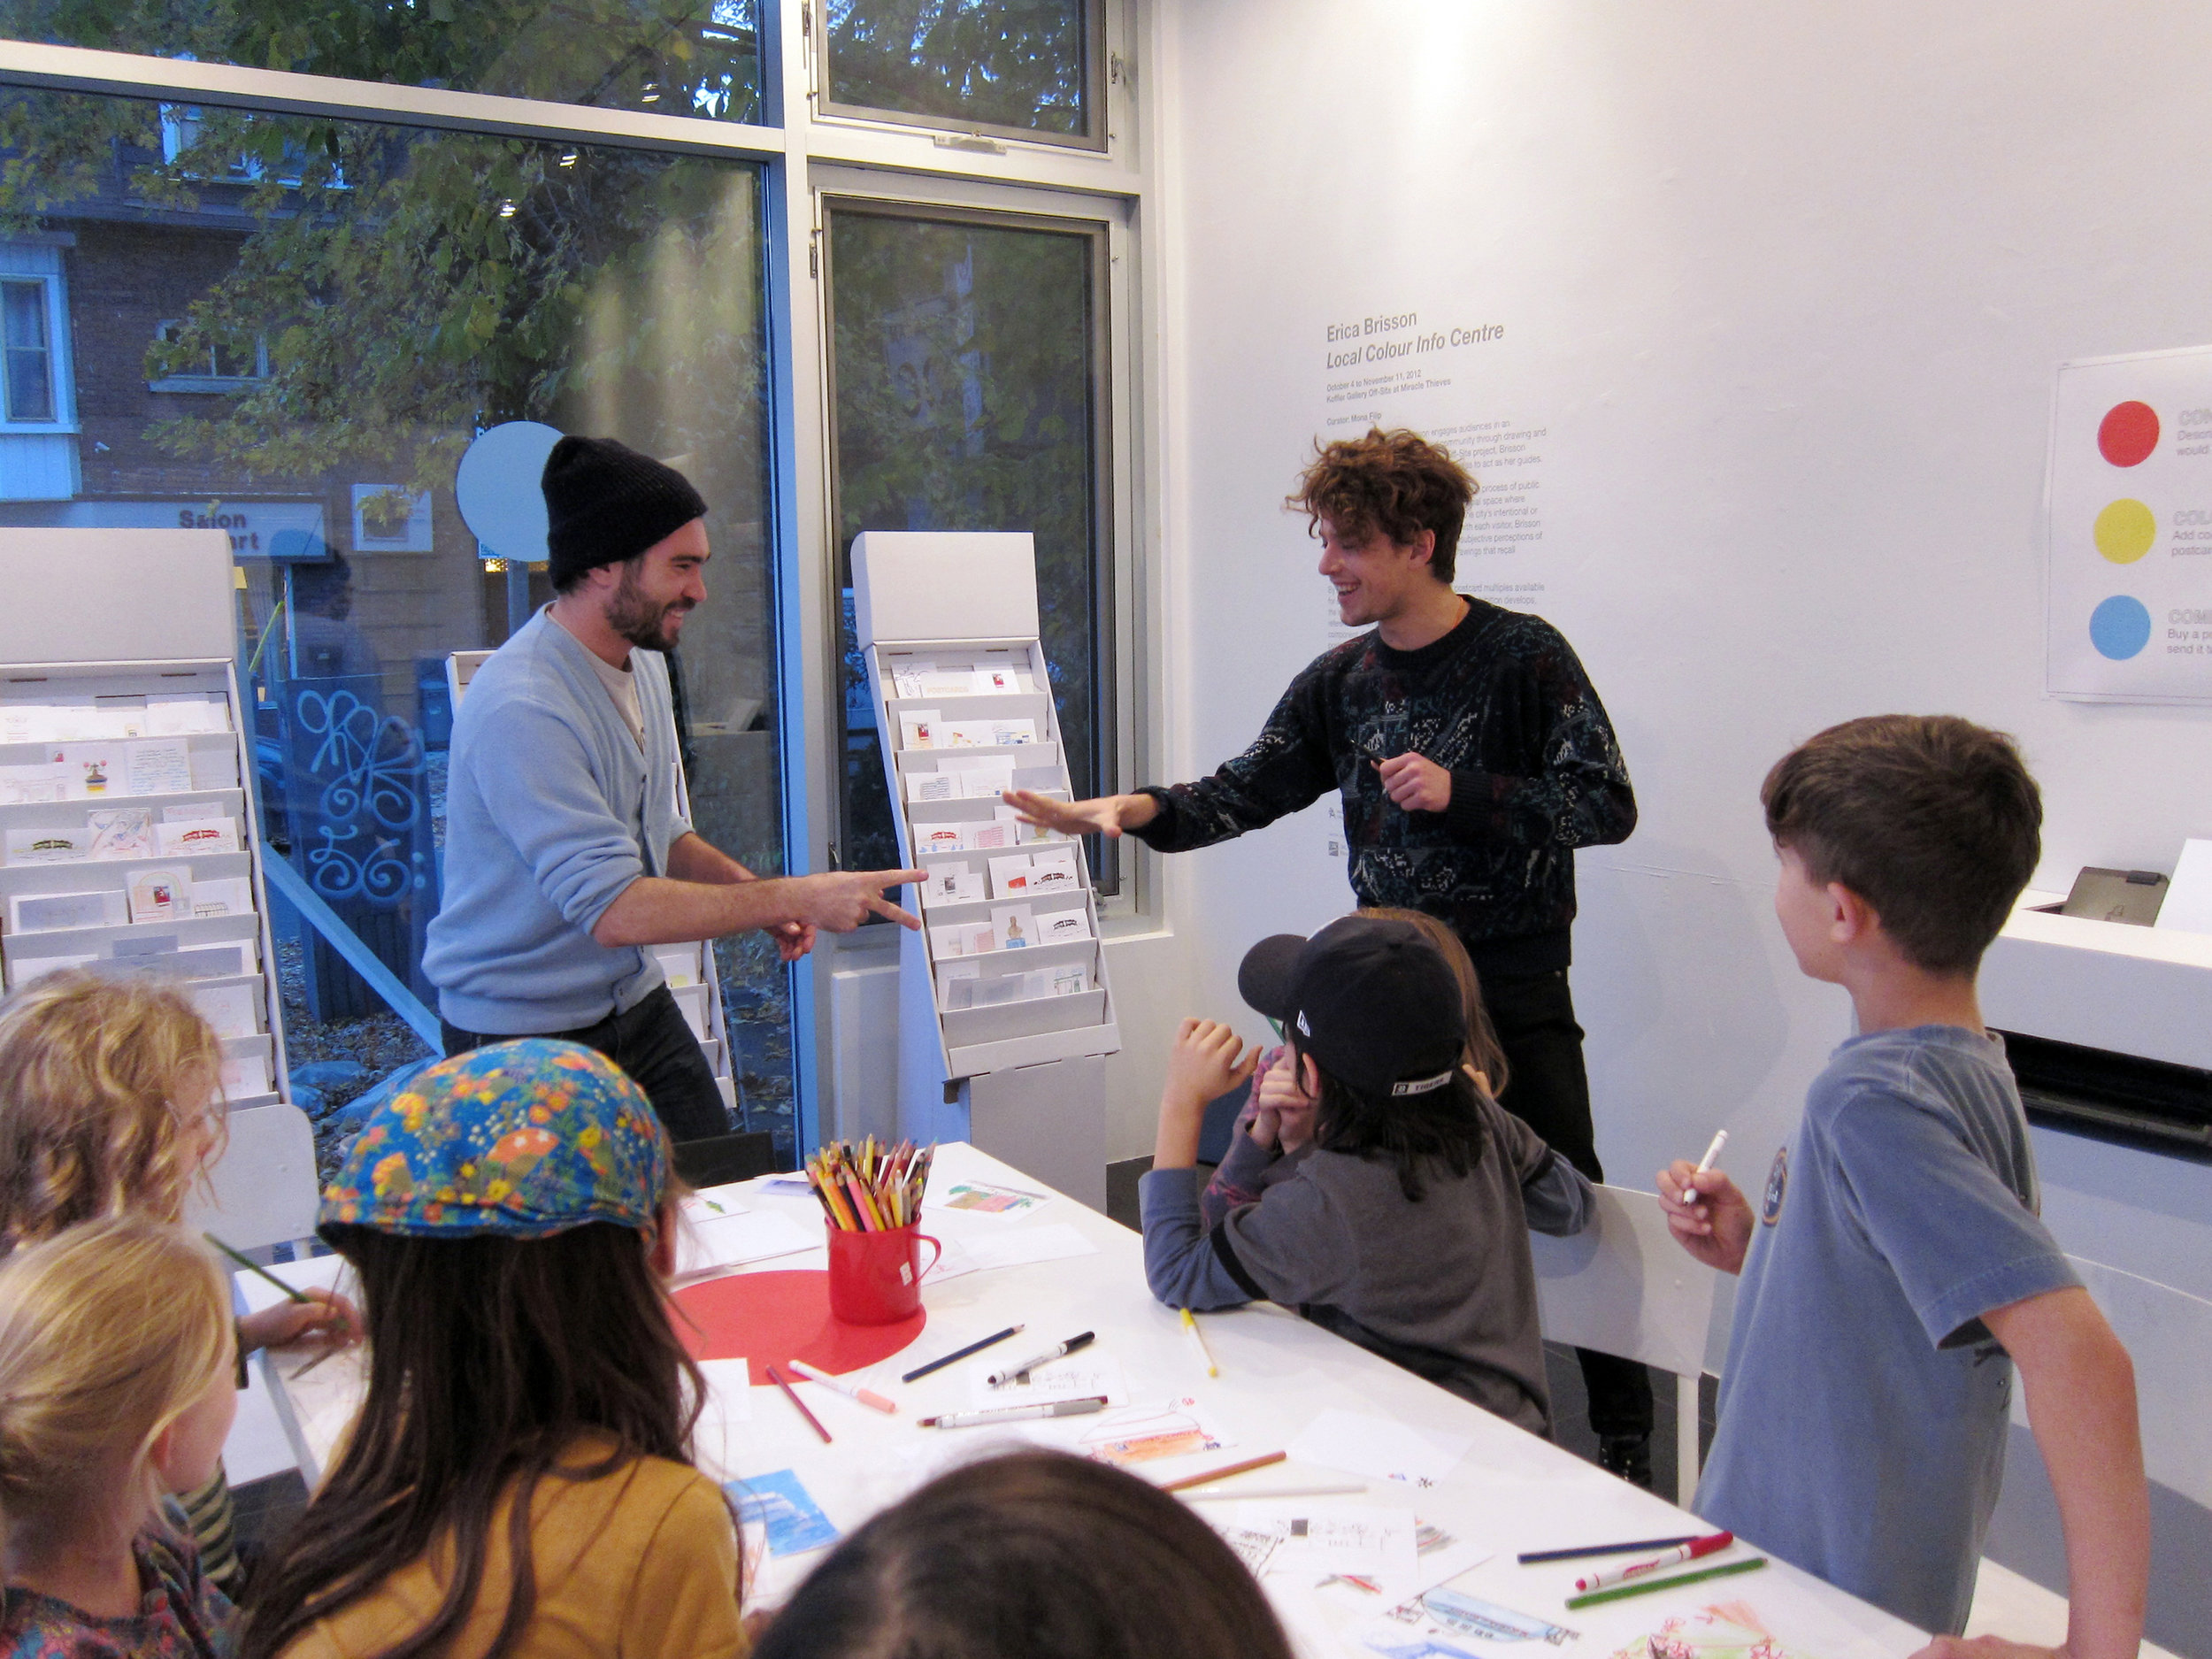 Workshops with community groups